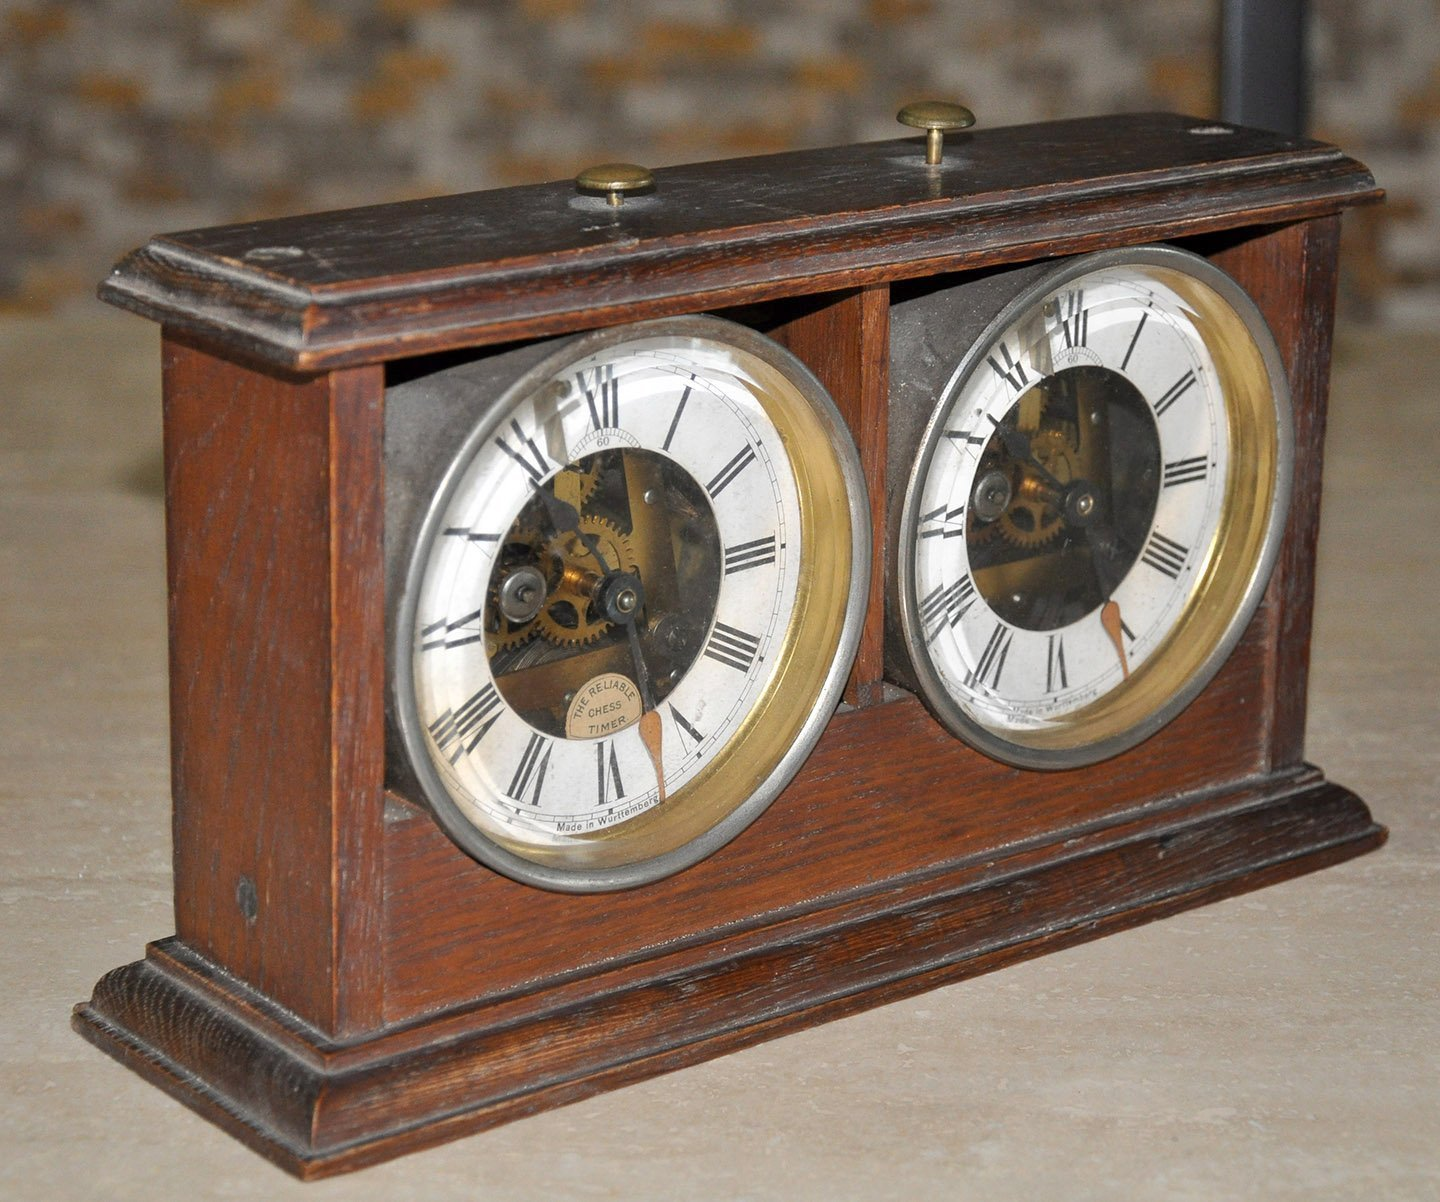 Tanner antique chess clock chessantiques tanner hastings clock amipublicfo Choice Image